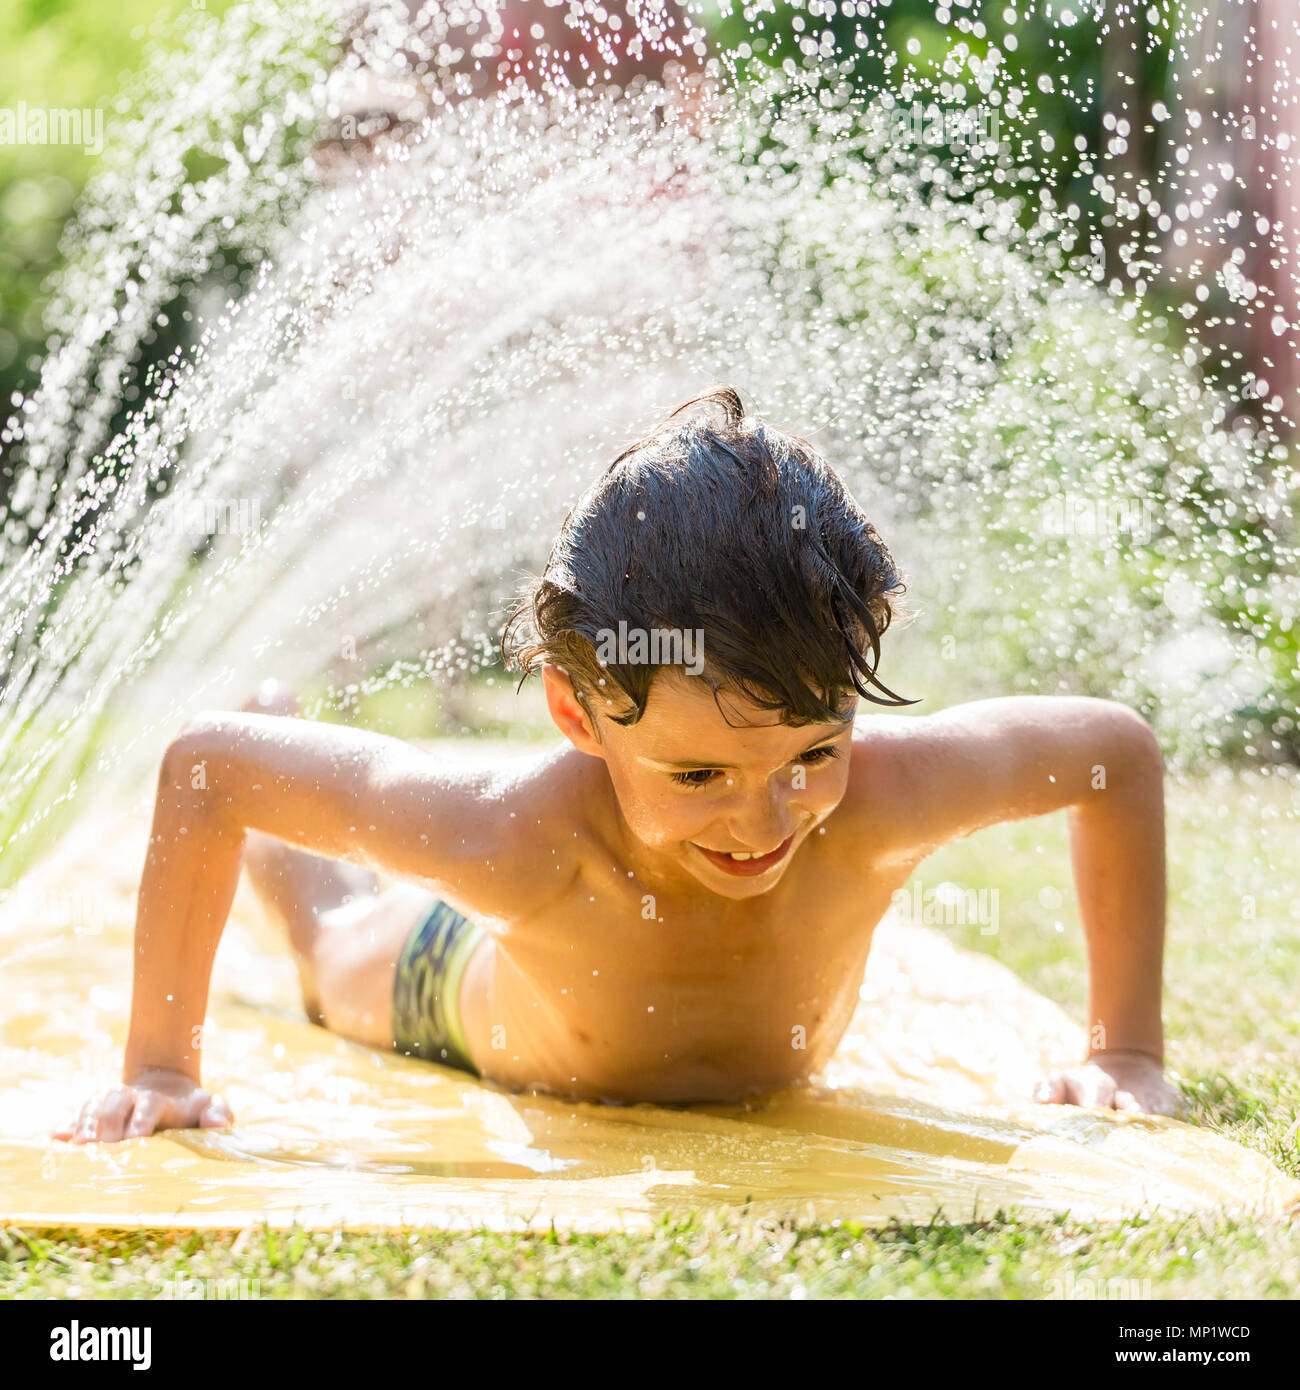 Boy cooling down with garden hose, family in the background - Stock Image